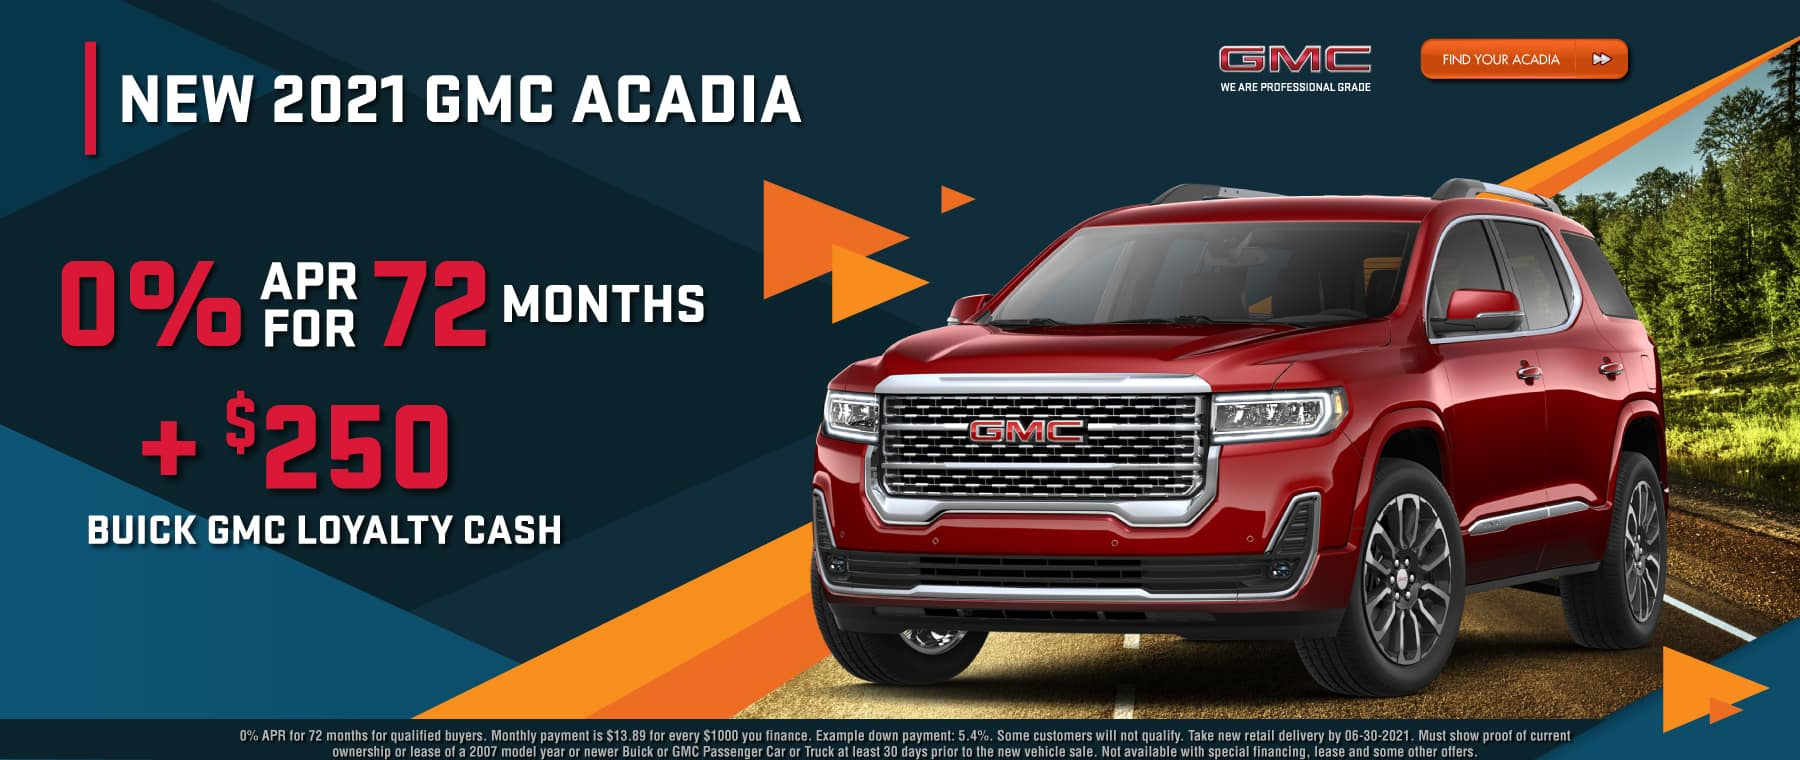 Find your Acadia